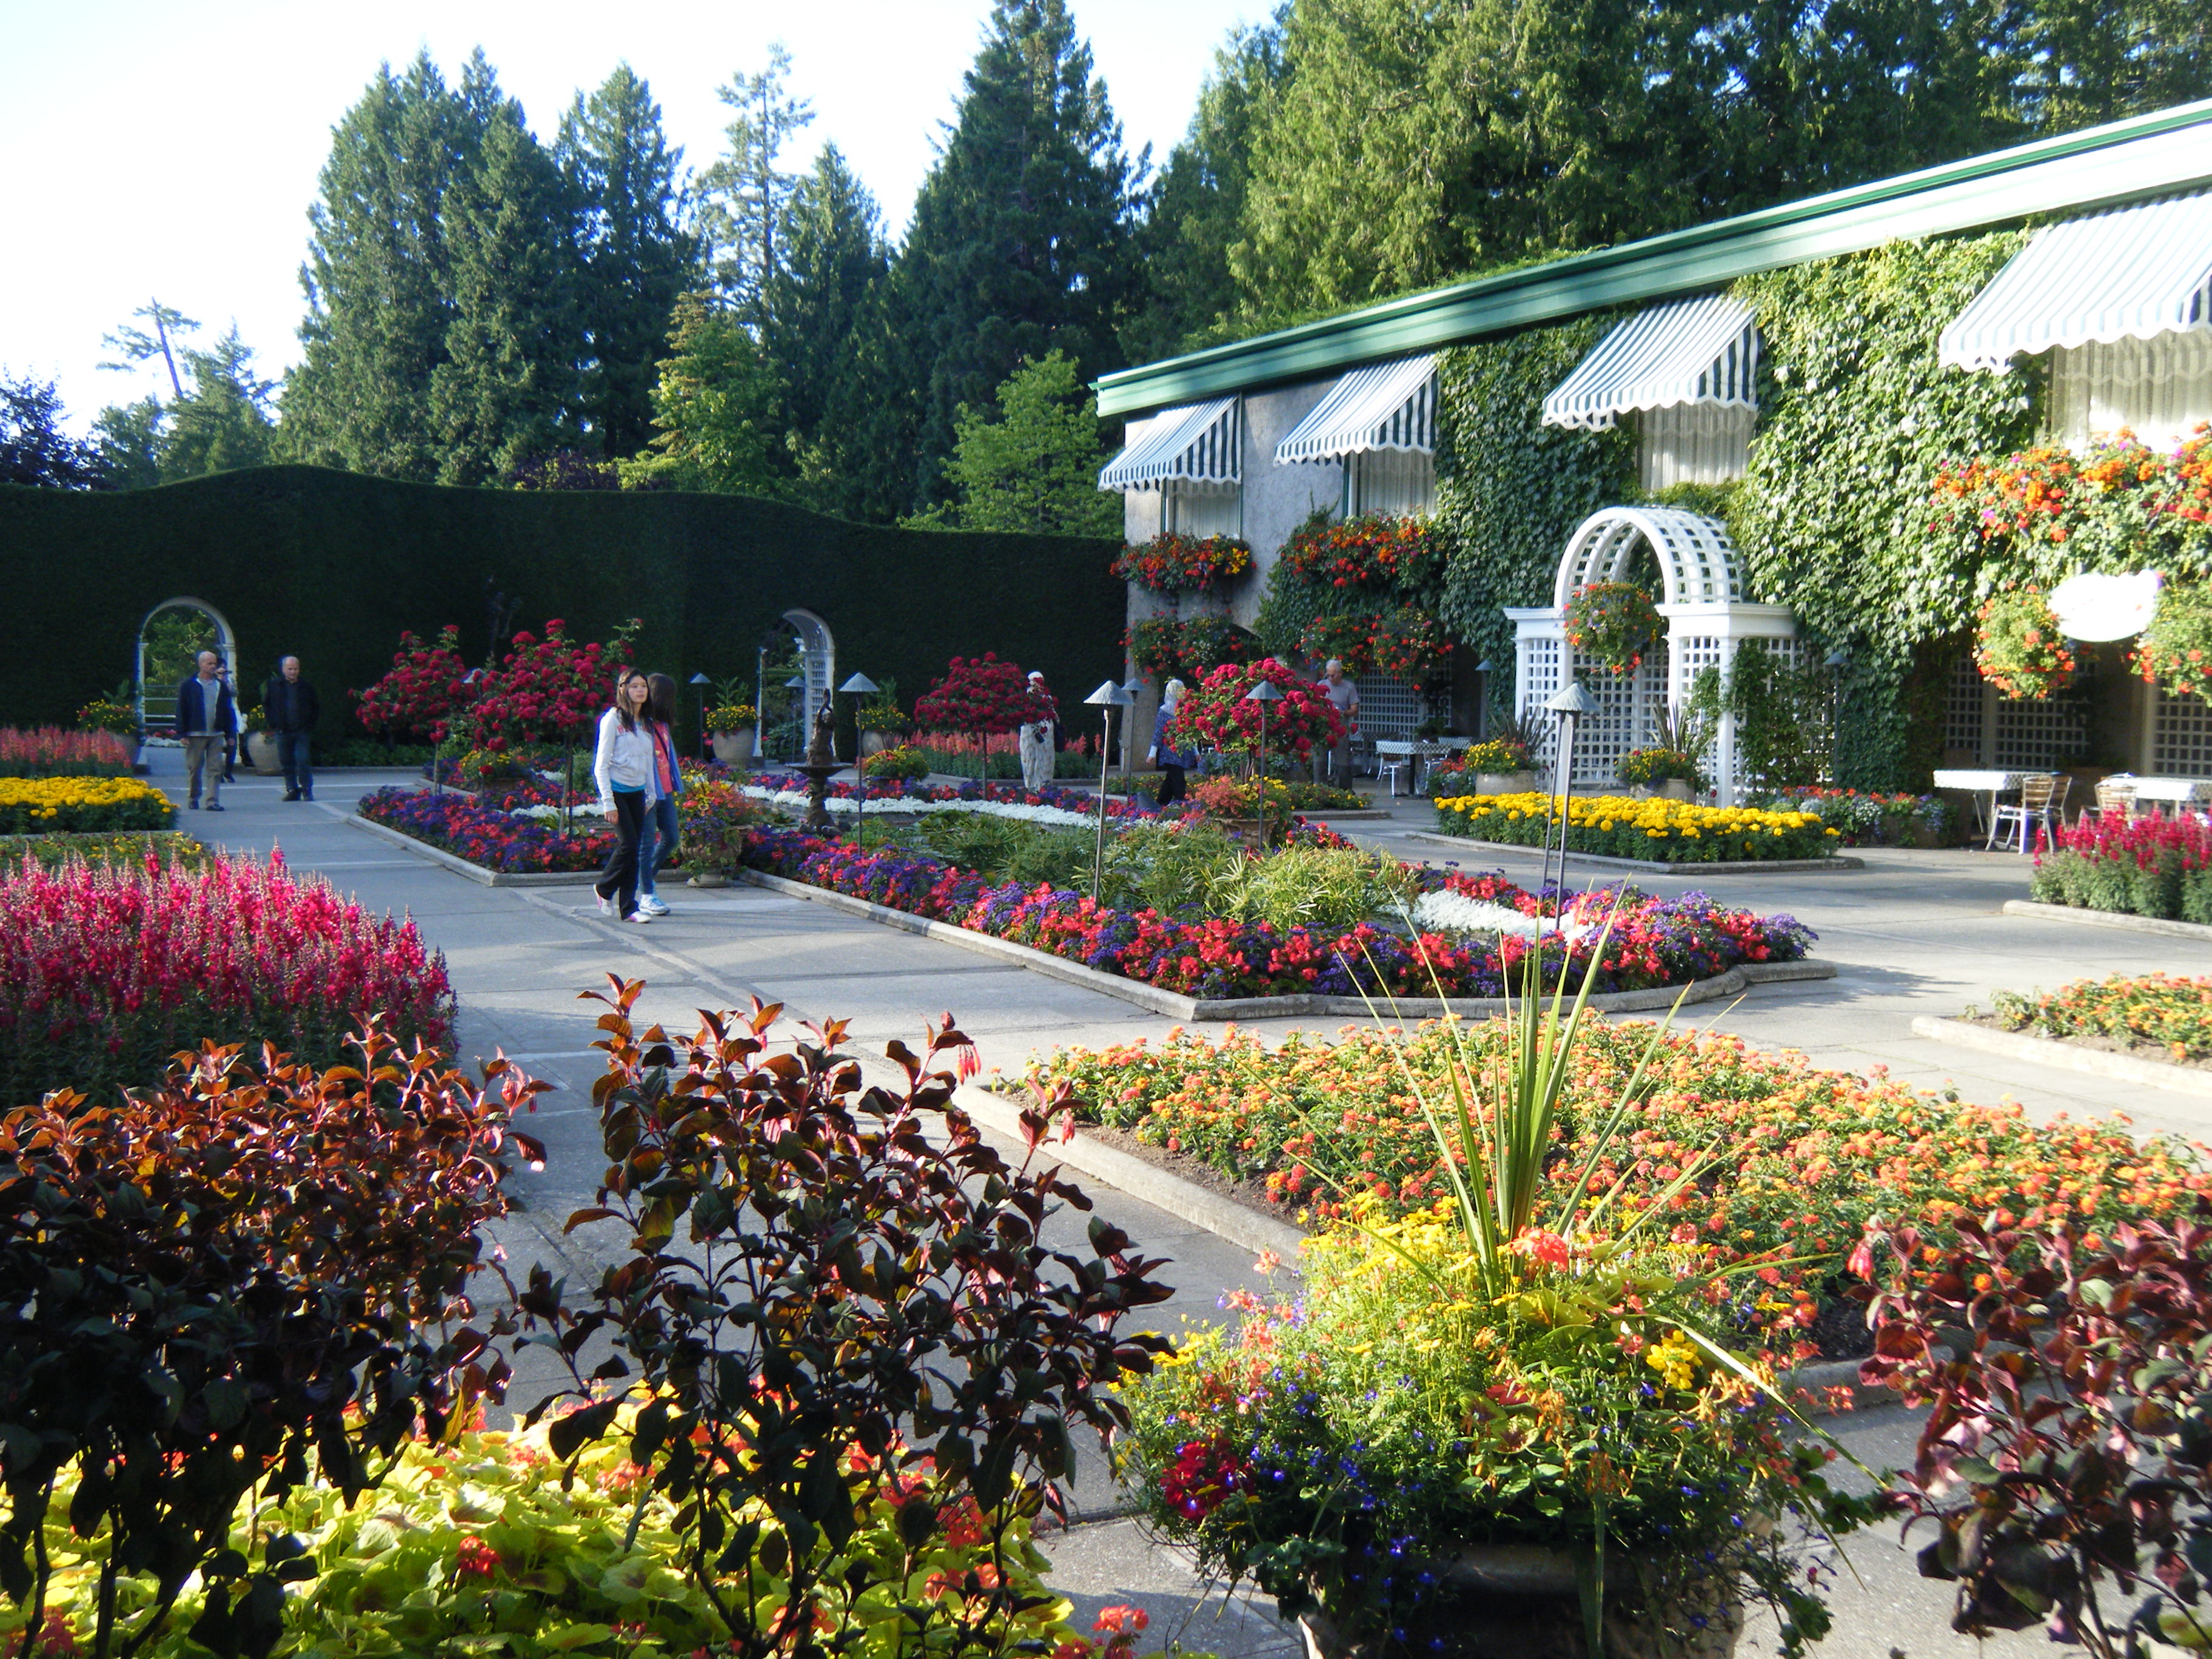 A Visit To Butchart Gardens Hortophile My New Garden